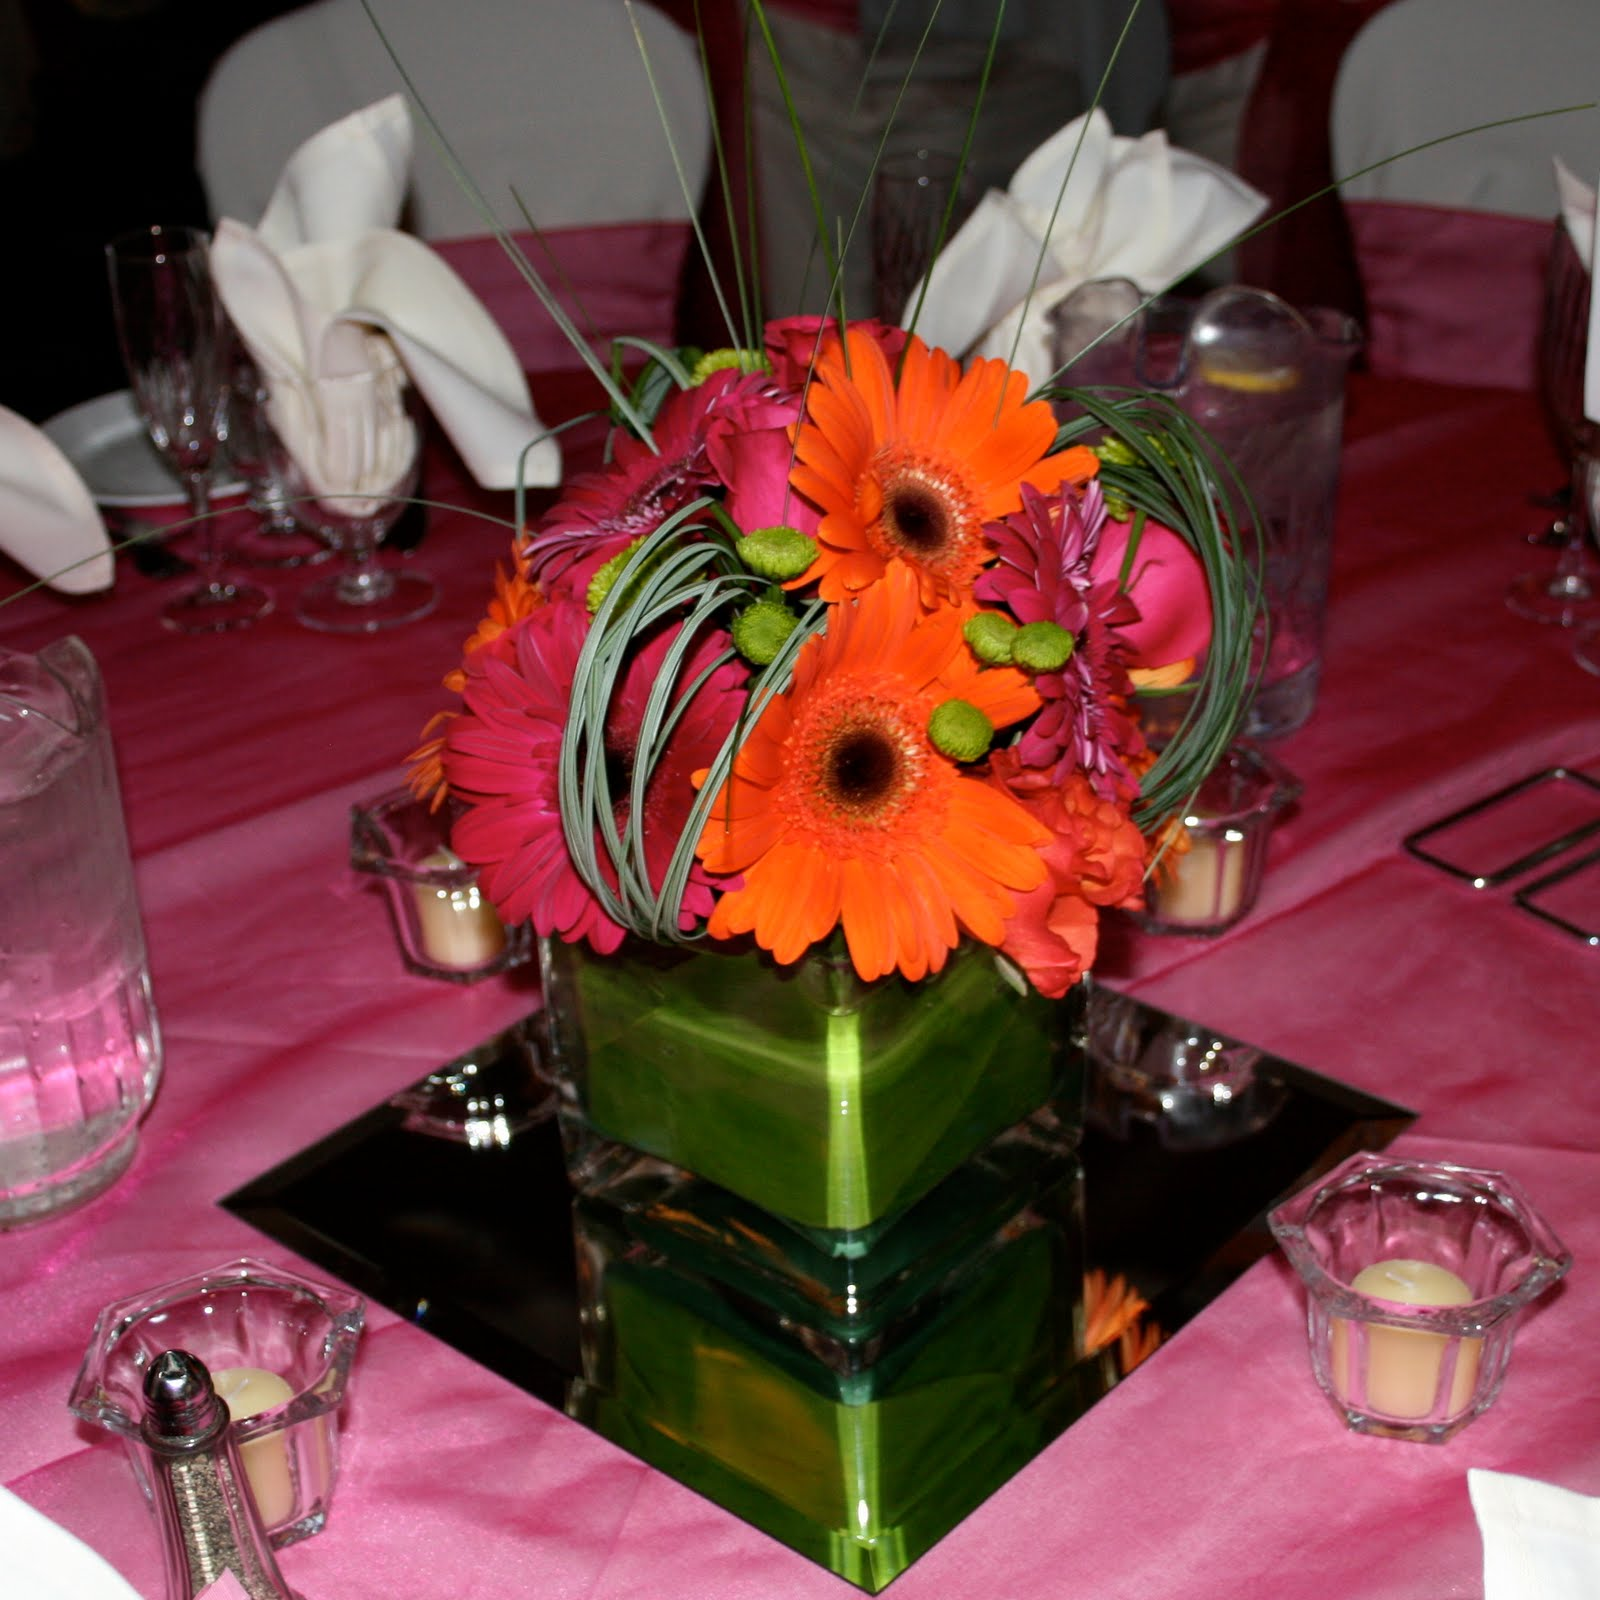 Brown bunny flowers may 22 2010 laurie and kevins wedding the second centerpieces were square rings of flowers surrounding a square glass vase with floating candles the rings of flowers were hand placed fuchsia reviewsmspy